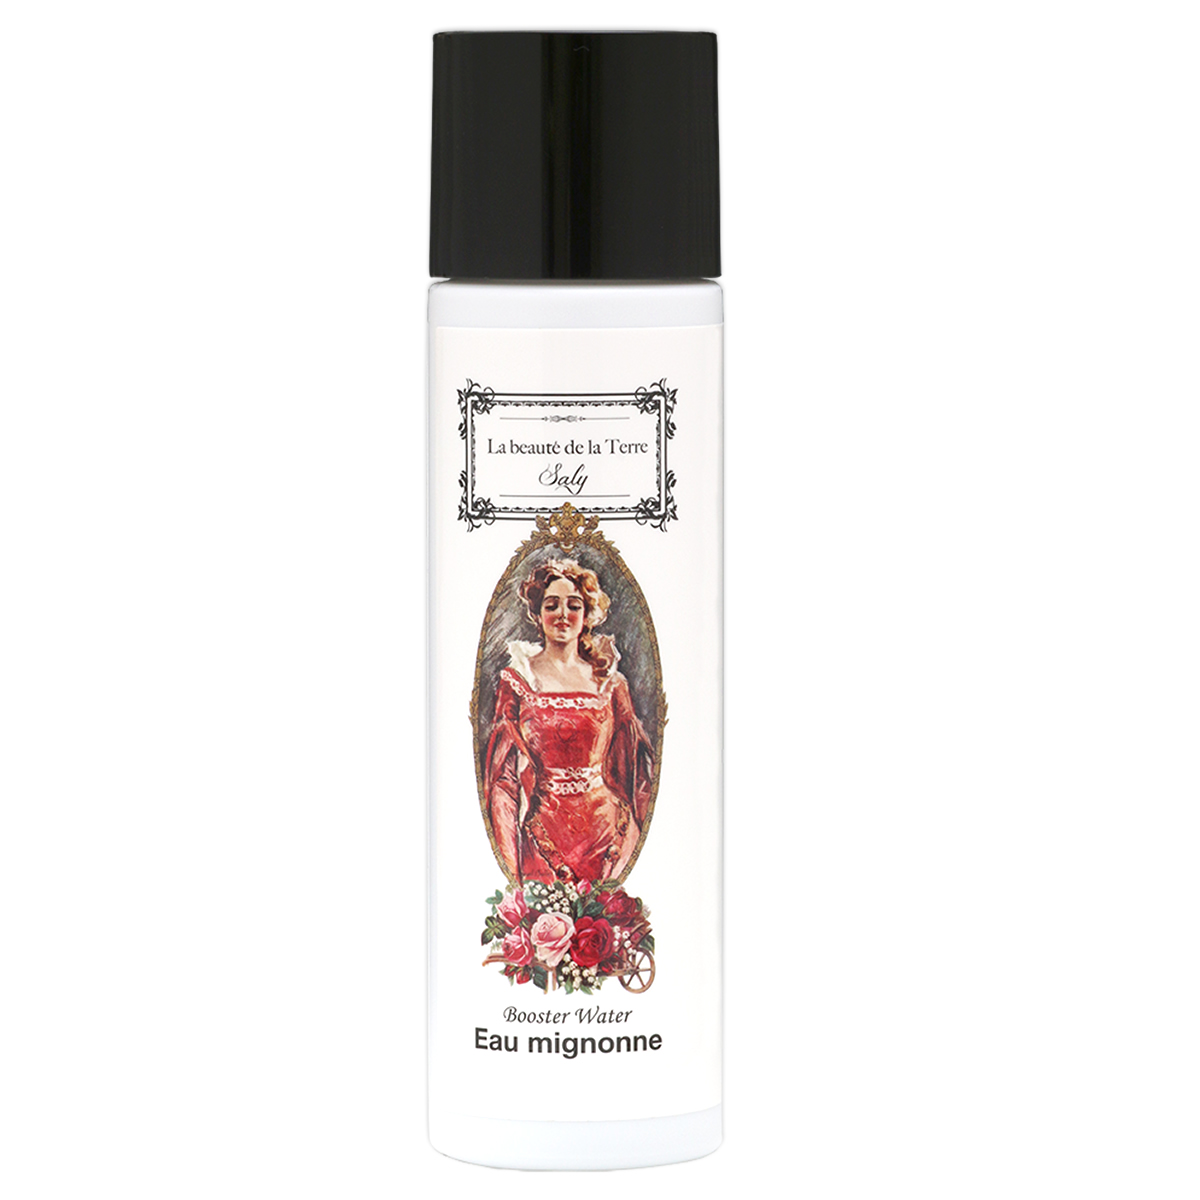 Saly Eau mignonne ブースターウォーター Booster Water